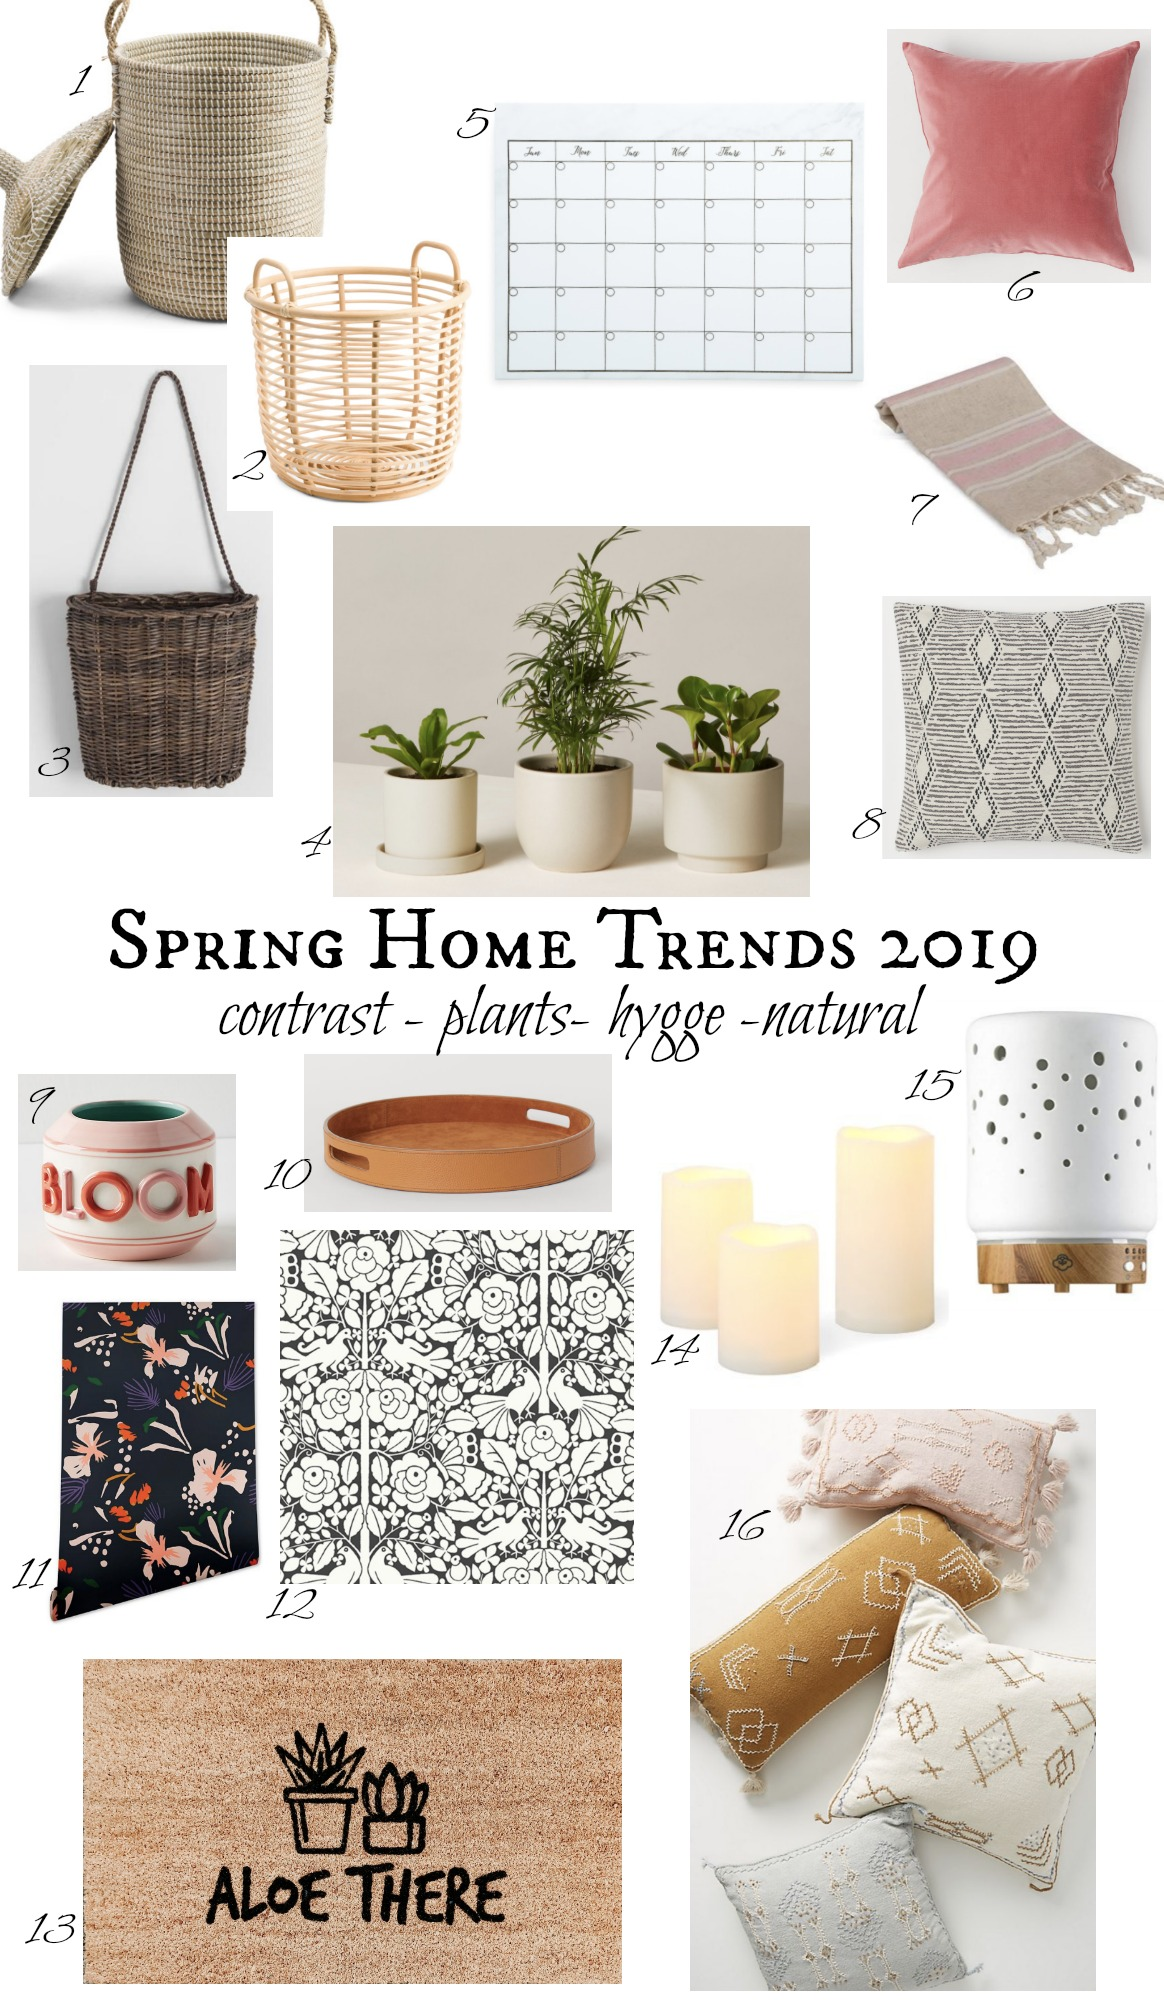 Home Design Ideas For 2019: Spring Home Decor Trends 2019